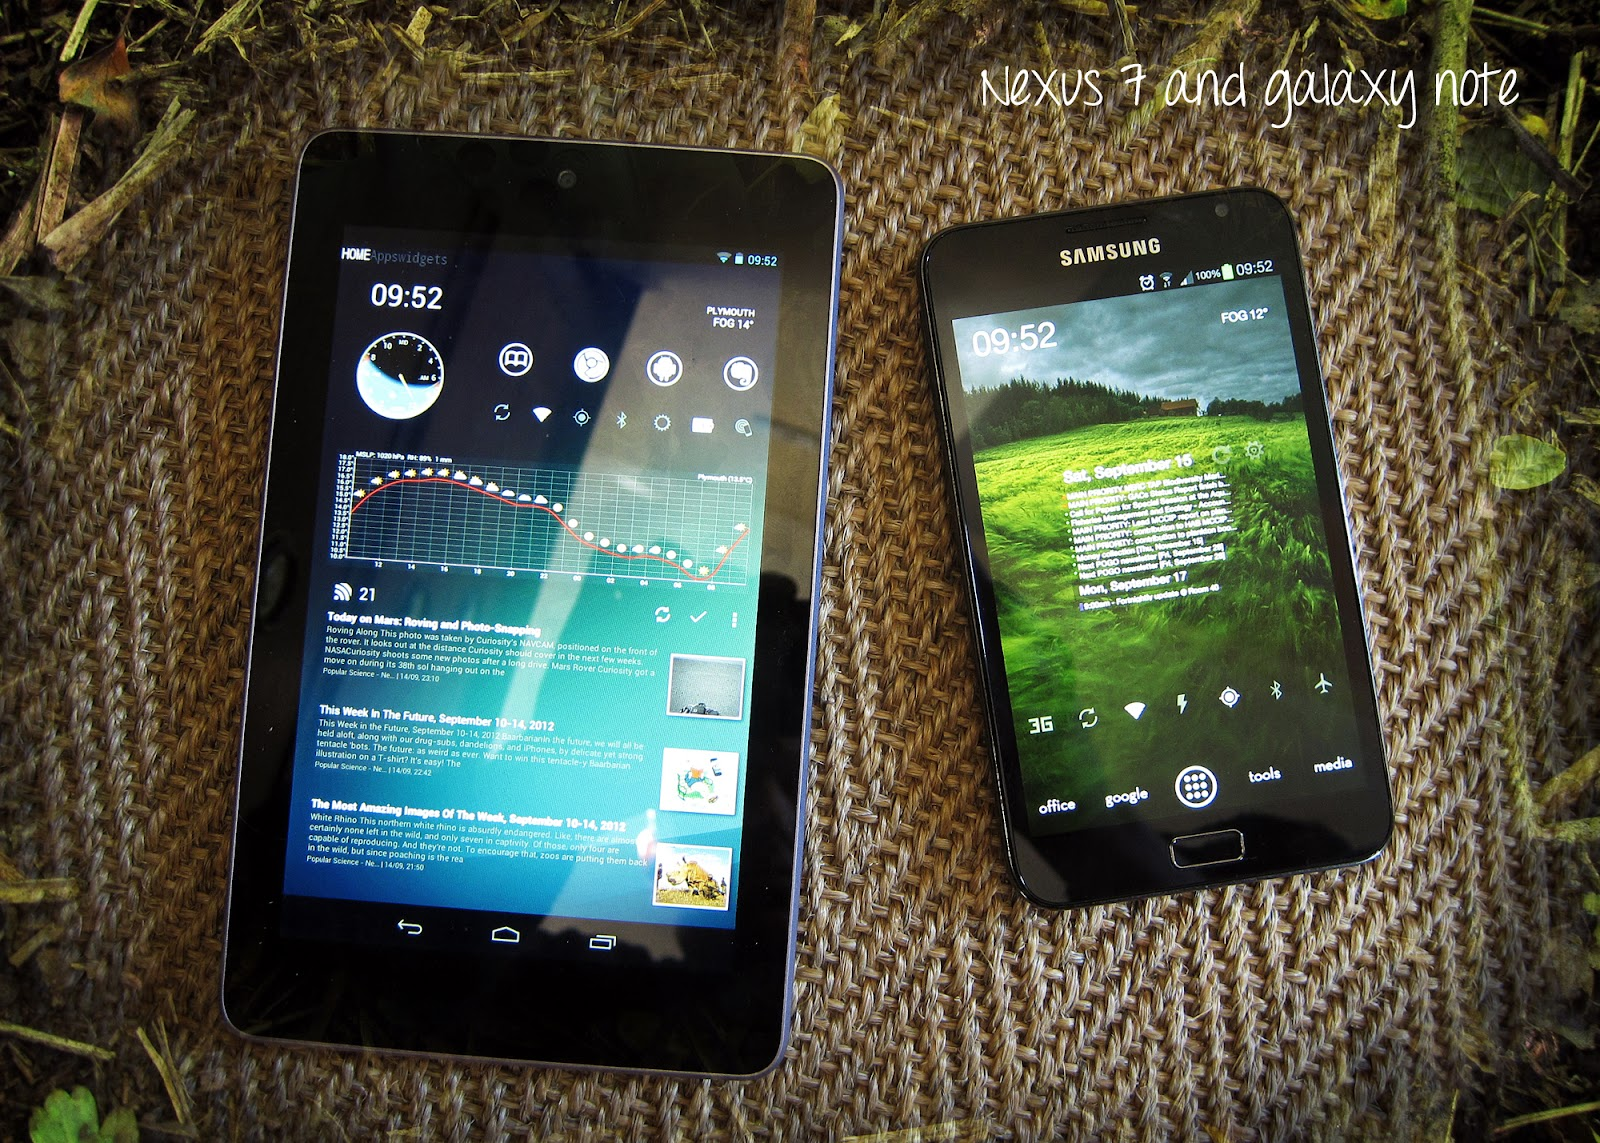 Small outdoor tablets: Nexus 7 and Galaxy note